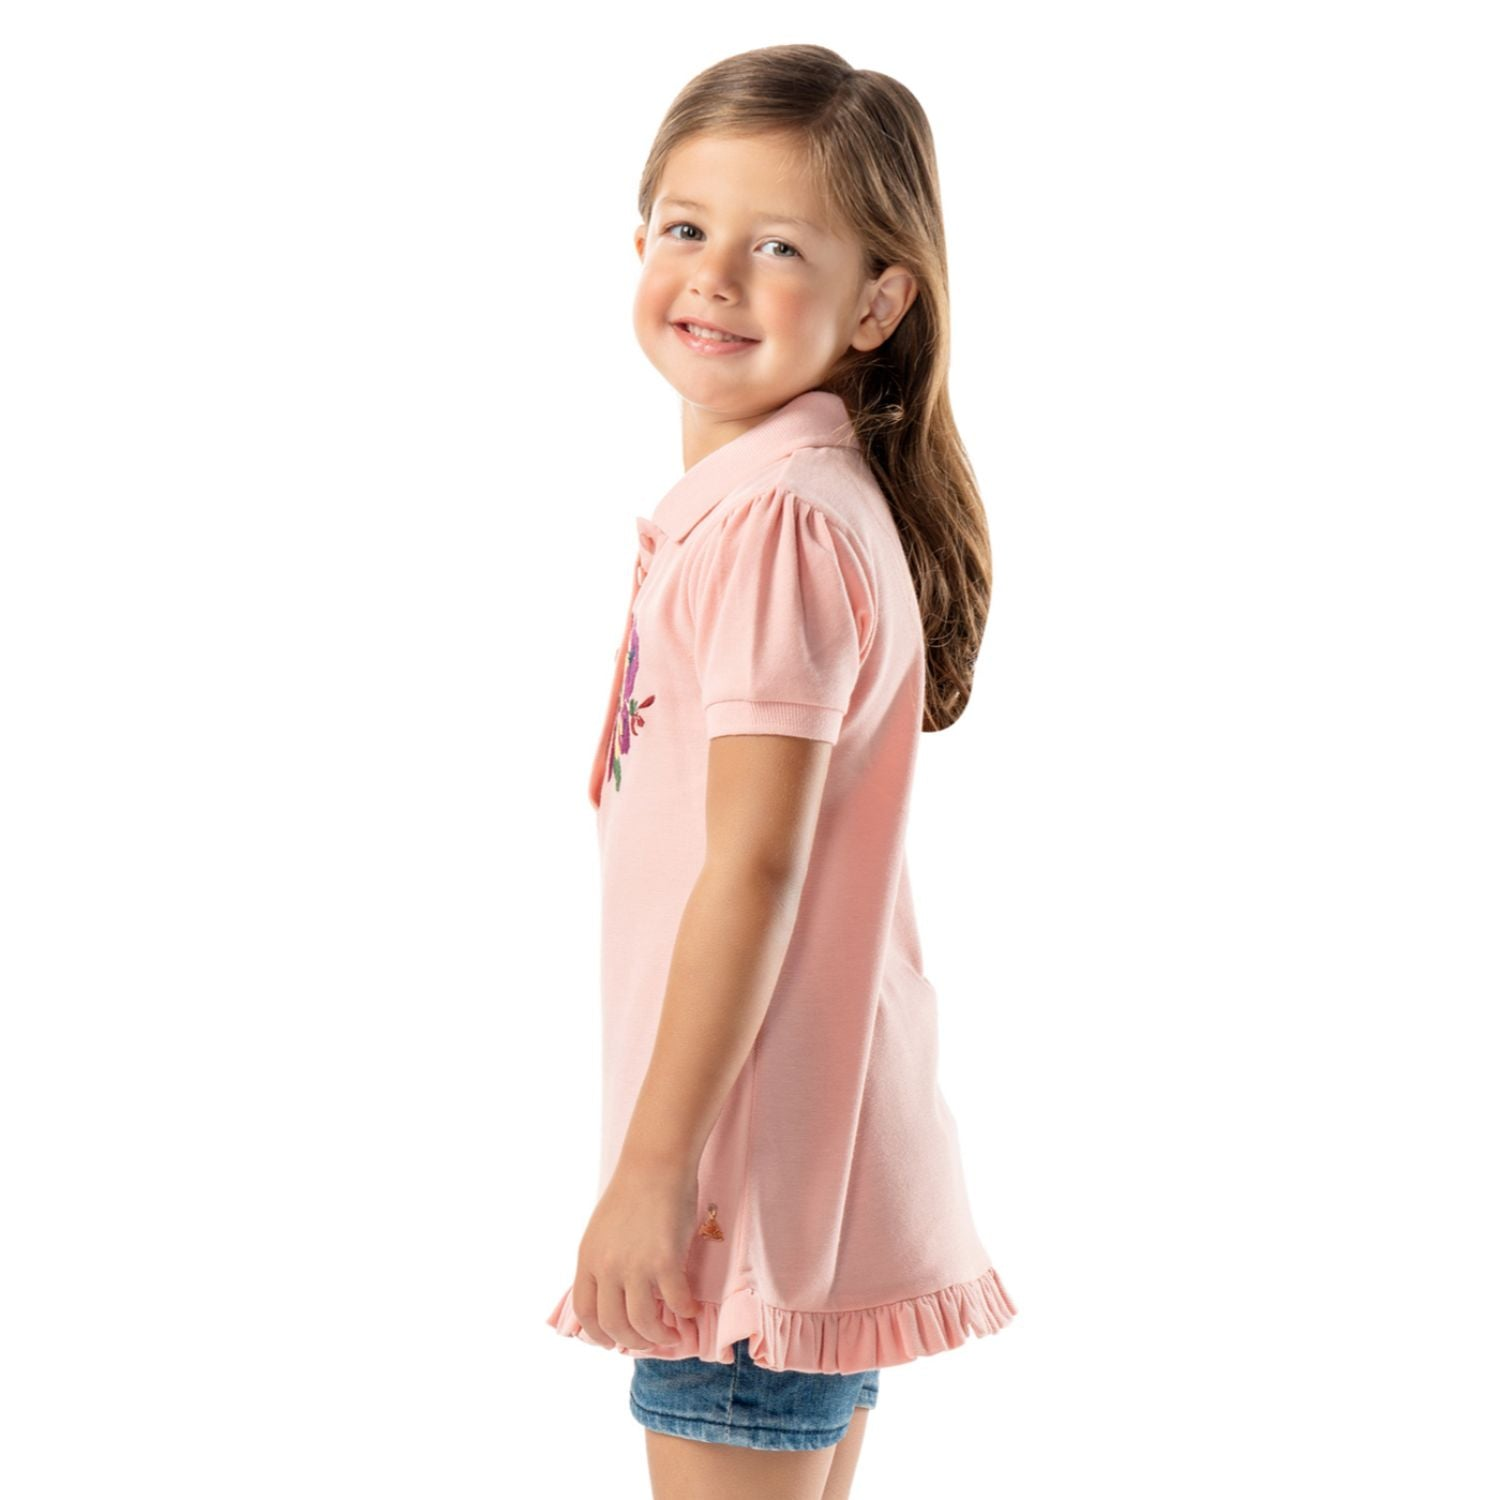 Balloon Top for Girls